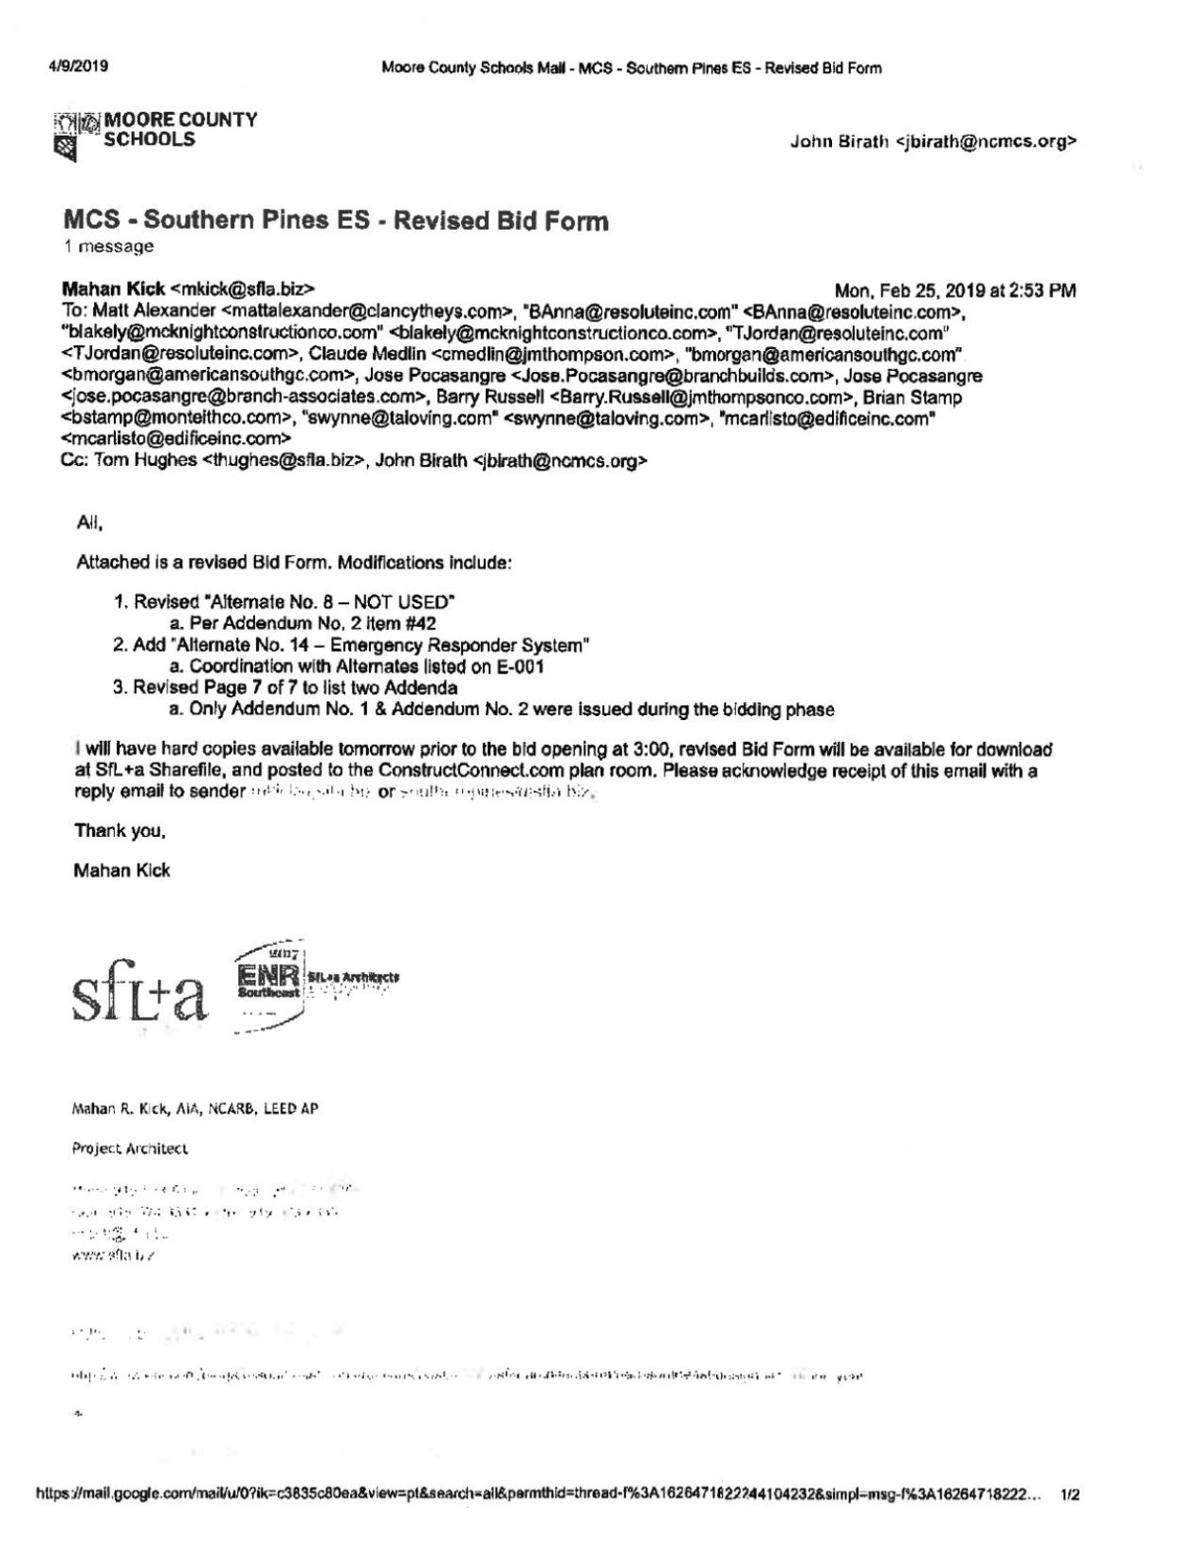 Responsive E-mails to Records Request (R1910398x7AD04) (2).pdf